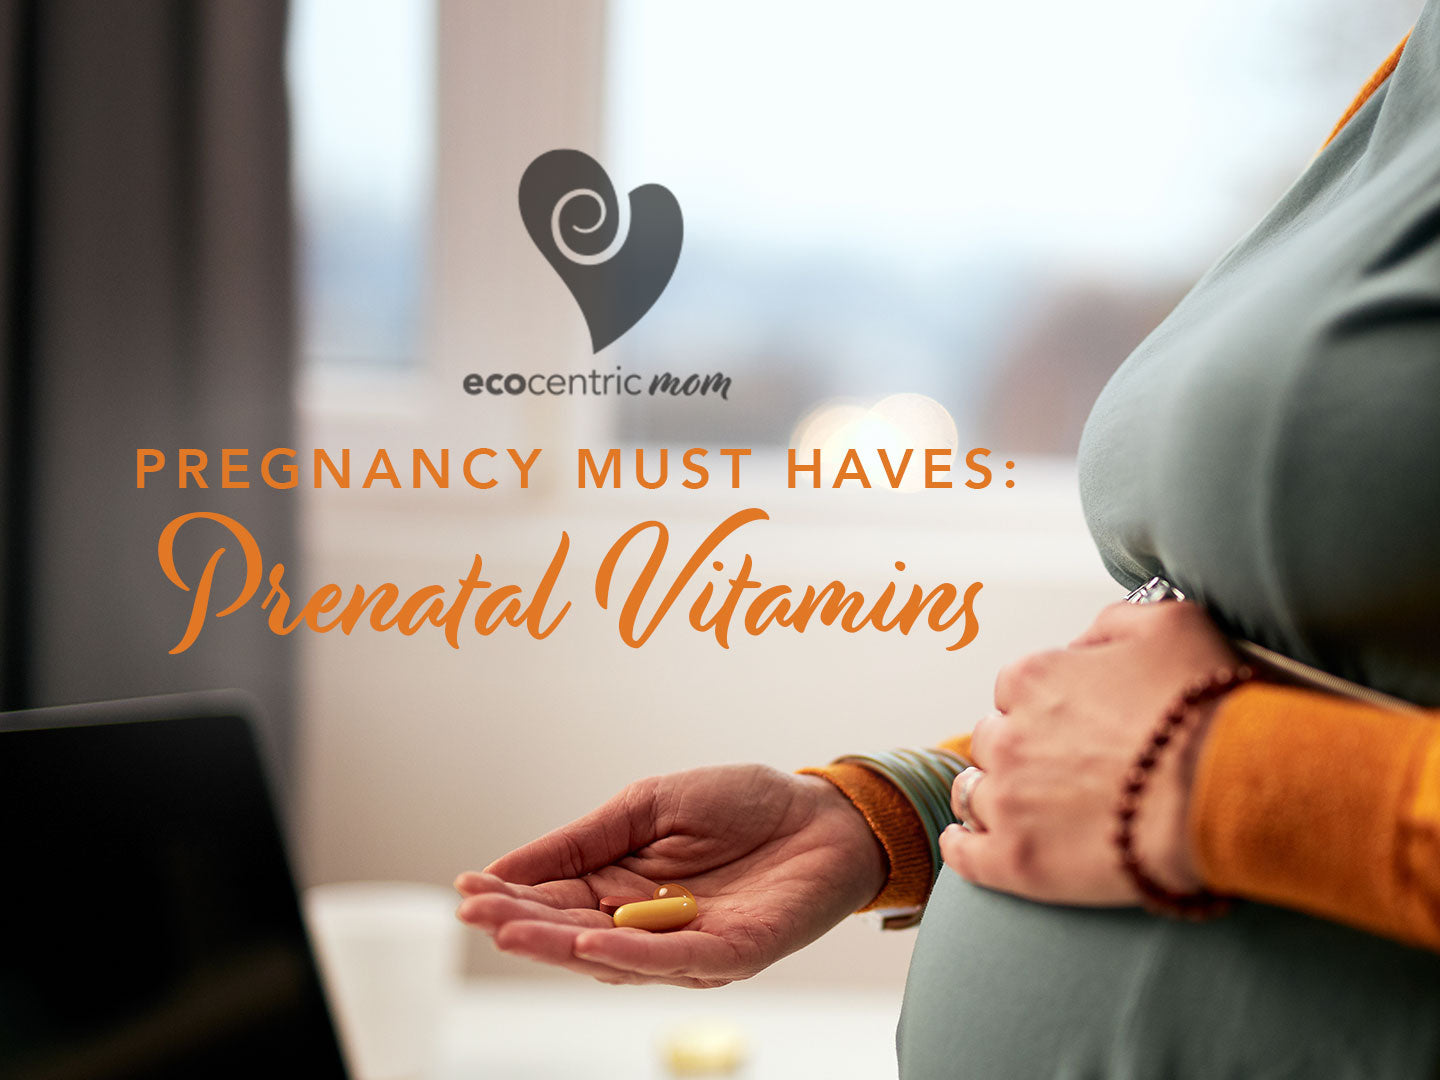 Pregnancy Must Haves: Prenatal Vitamins